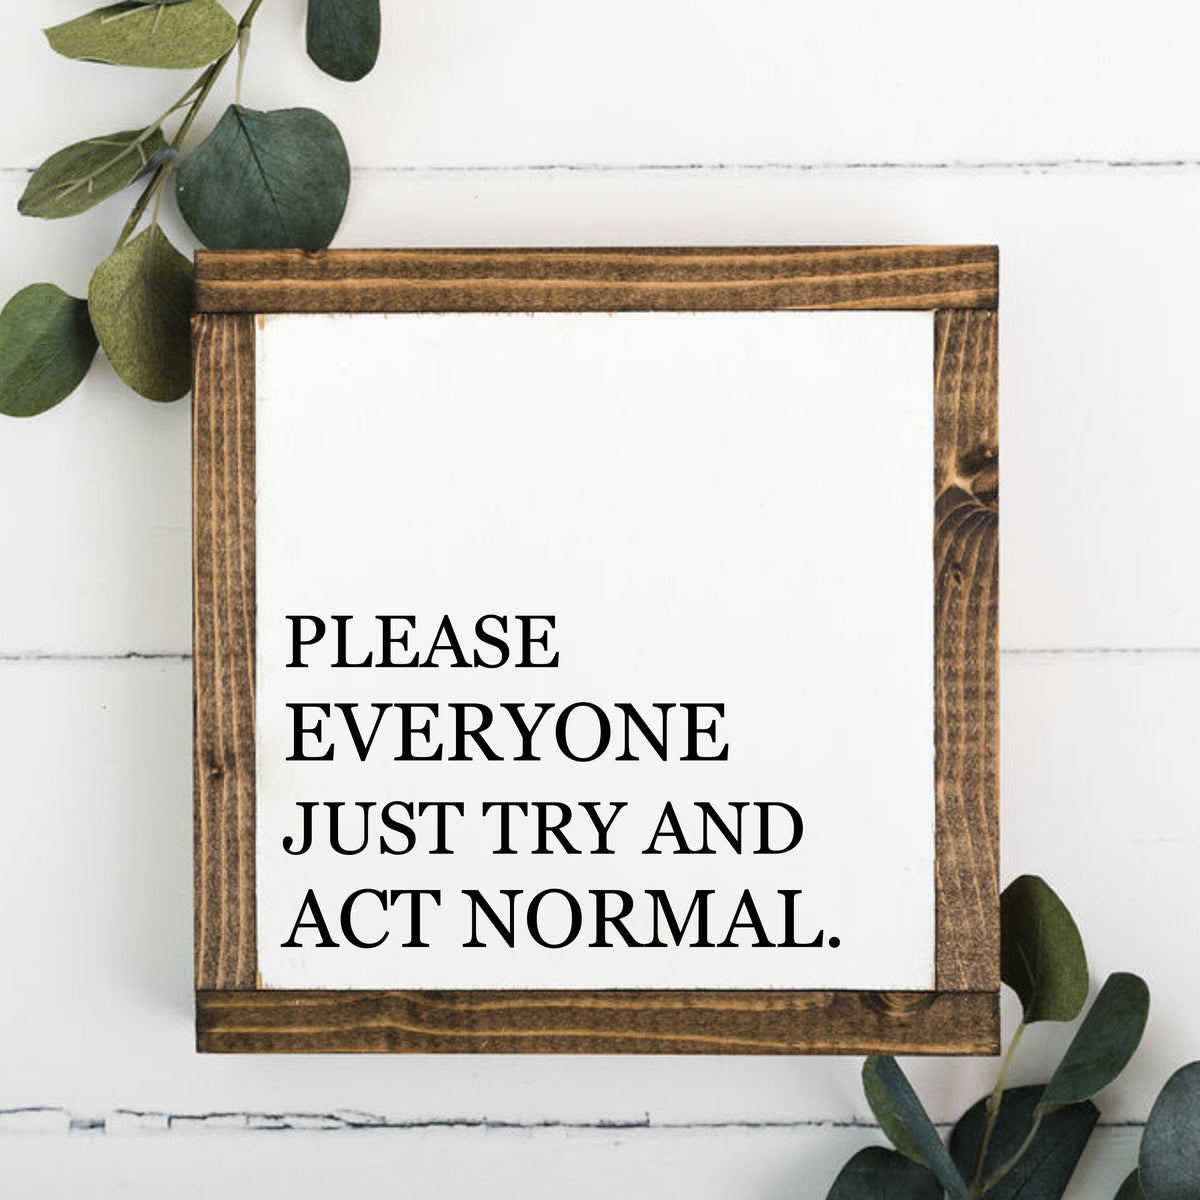 Everyone Act Normal 8 x 8 Framed Sign